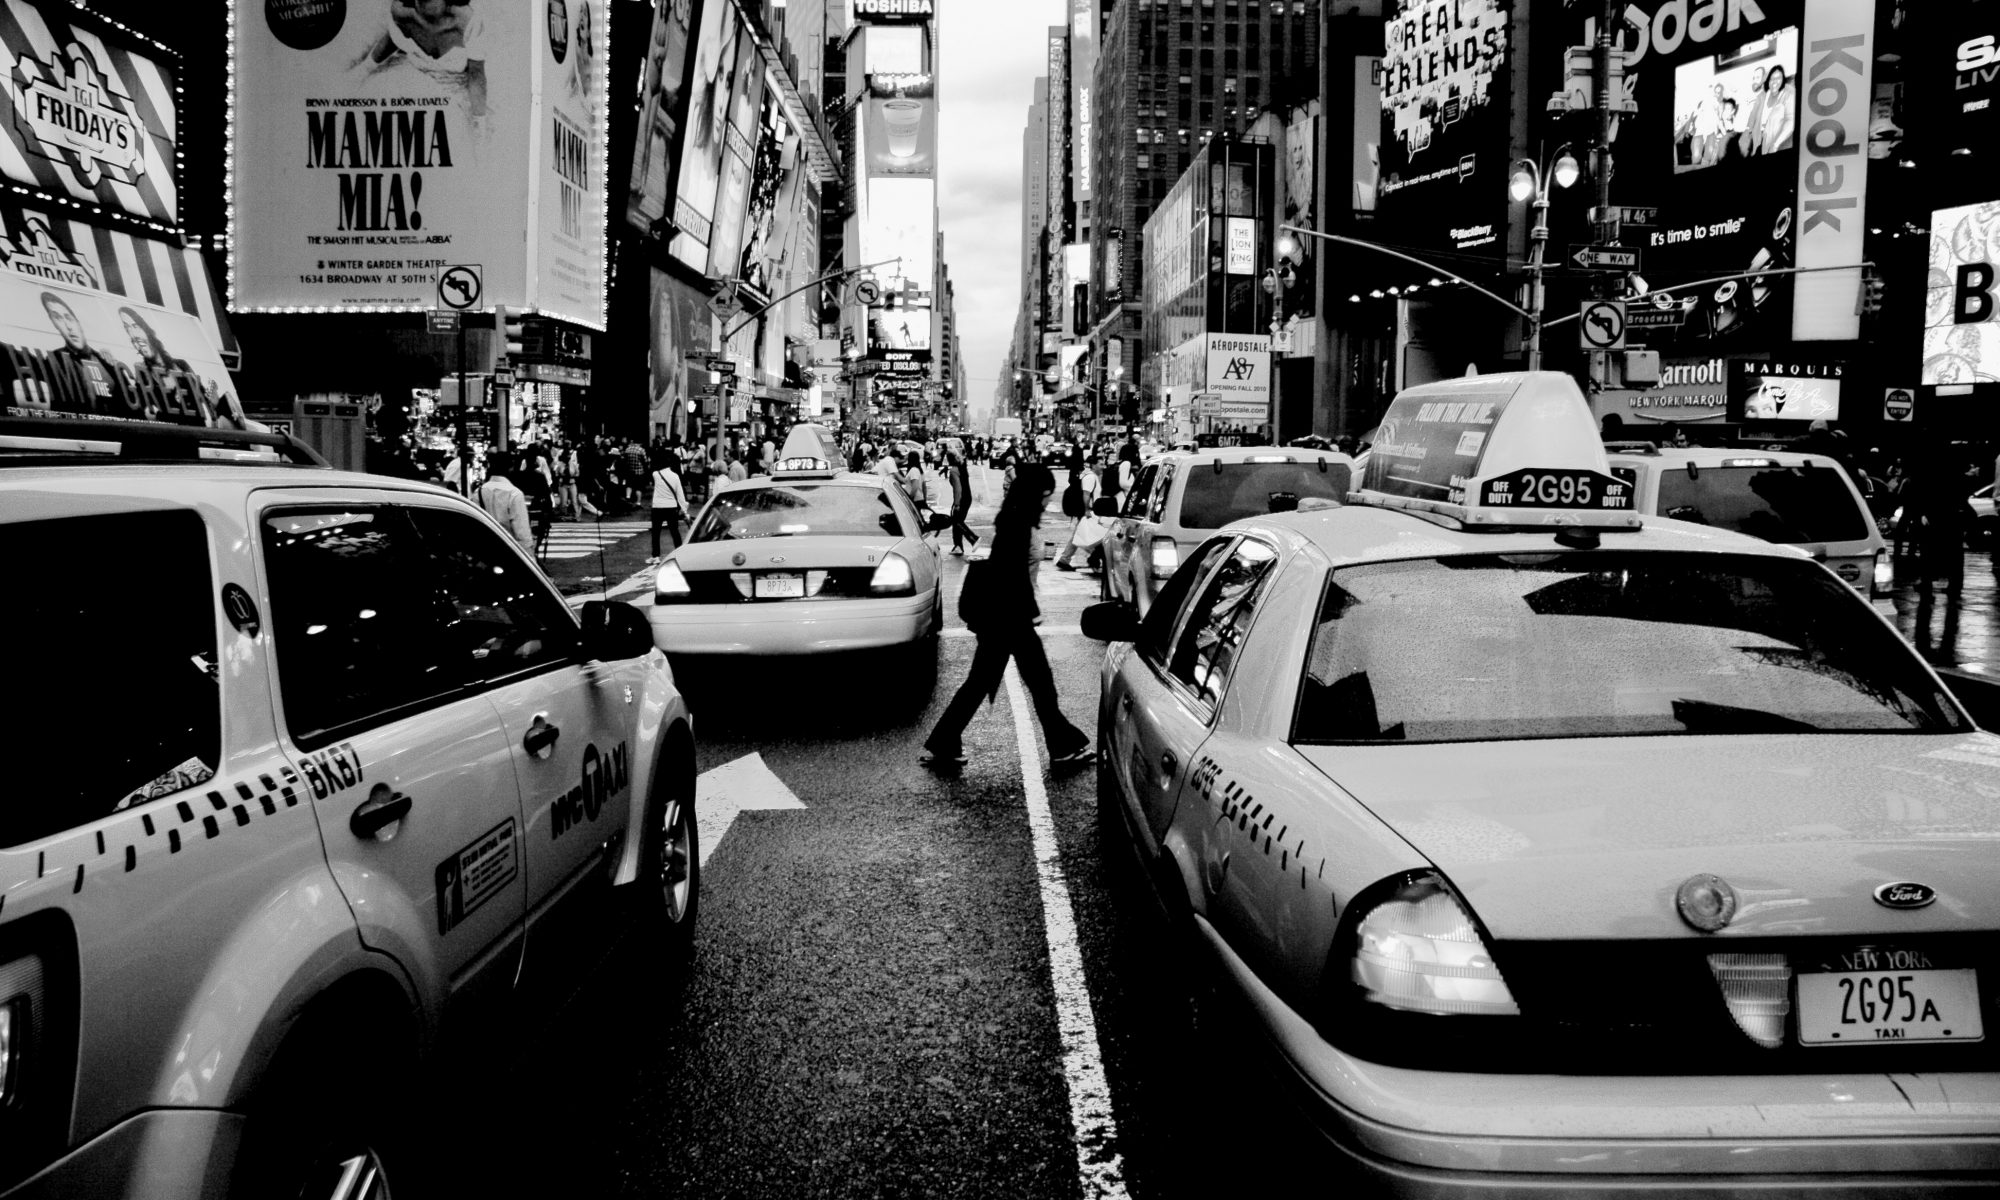 Cabs near times square